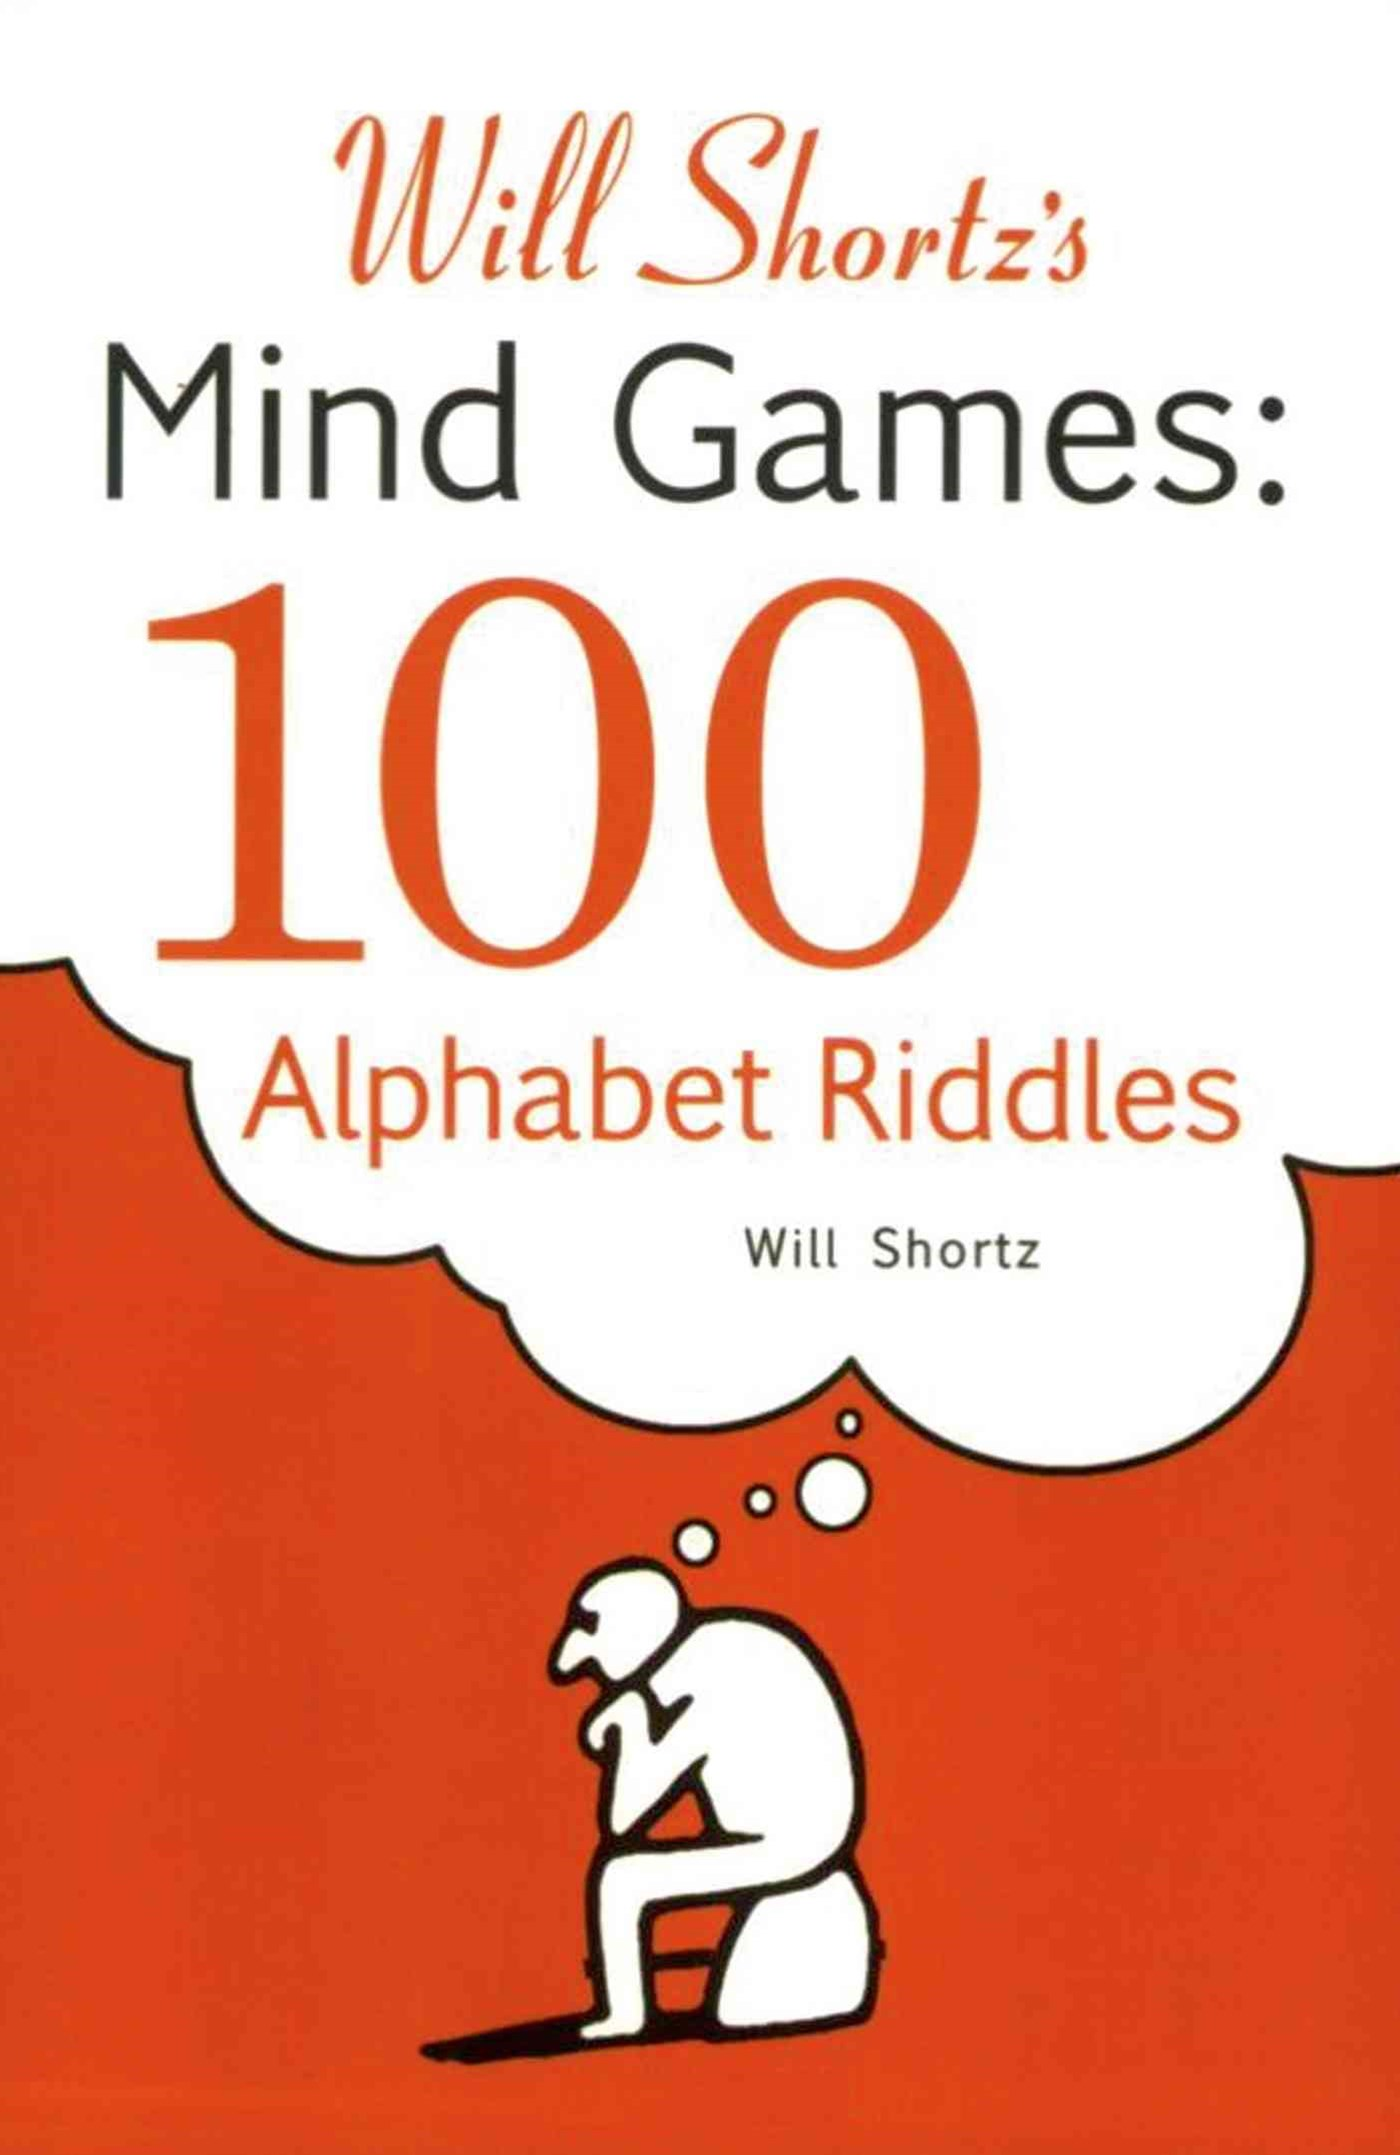 Mind Games: 100 Alphabet Riddles